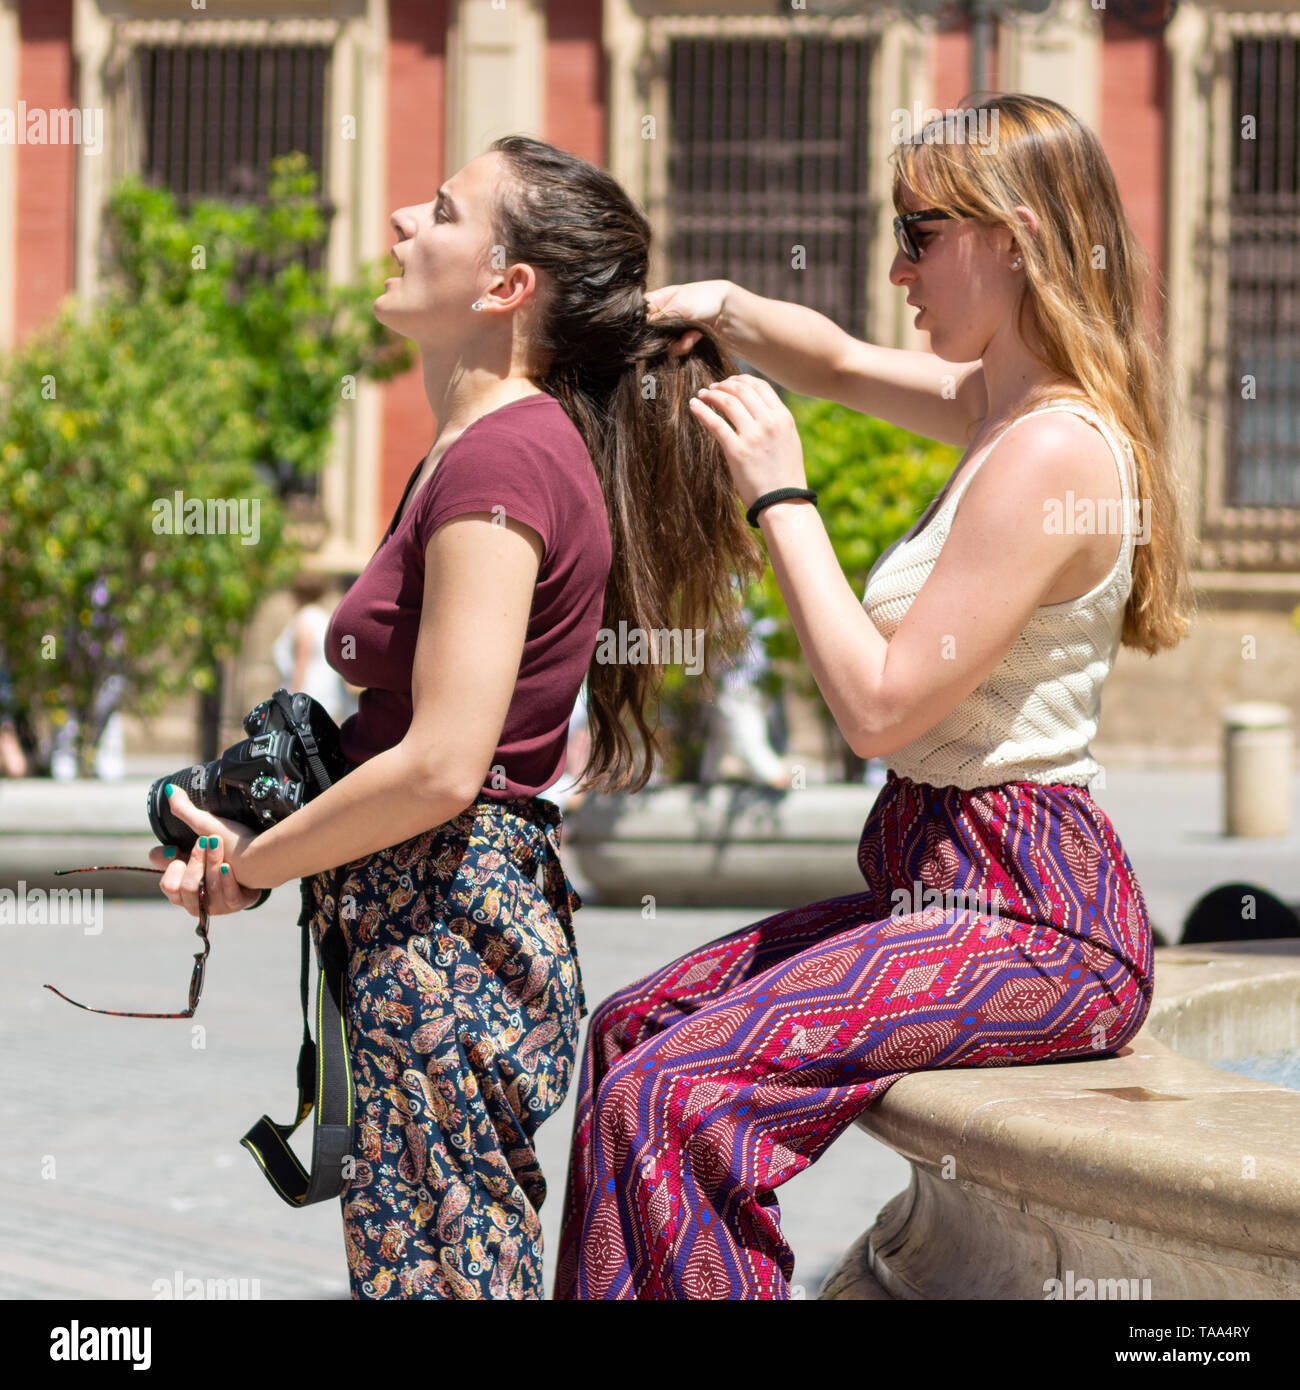 Girl plaiting hair for a friend in a public space on a hot day. - Stock Image